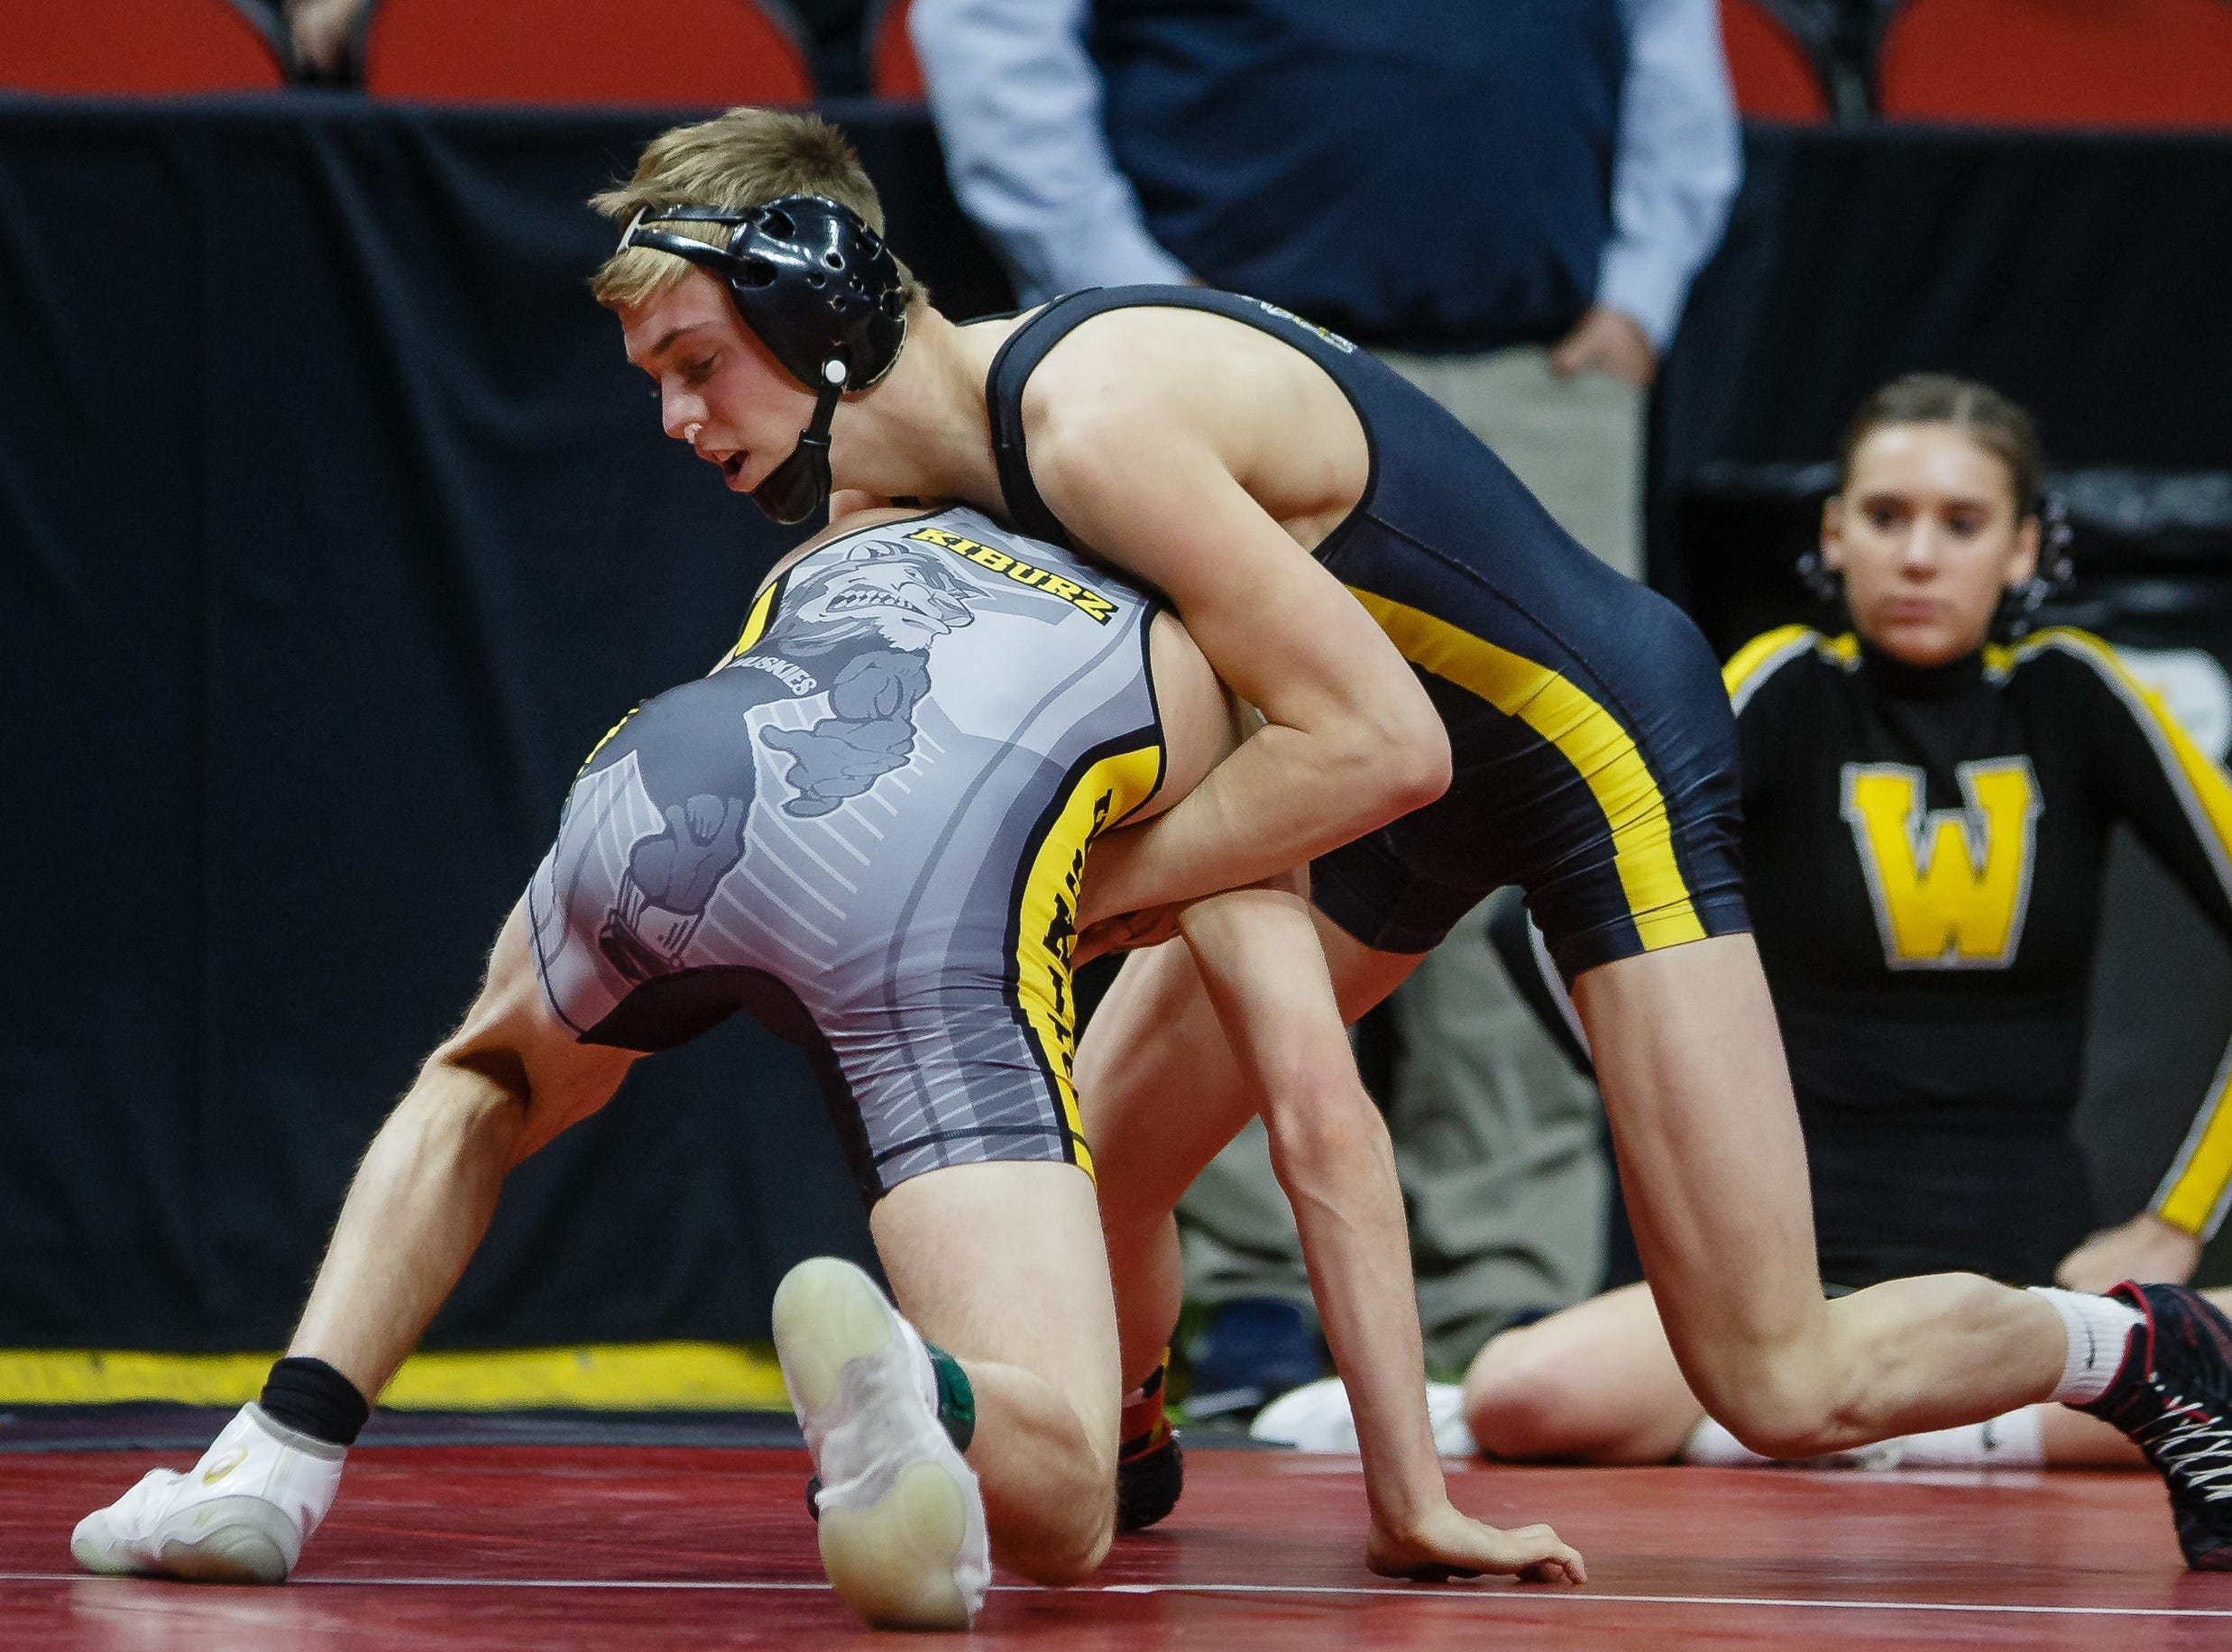 Eric Faught of Clear Lake wrestles Kruise Kiburz of Winterset during their class 2A 132 pound state championship semi-final match on Friday, Feb. 15, 2019 in Des Moines. Faught moves onto the finals with a 7-1 decision.